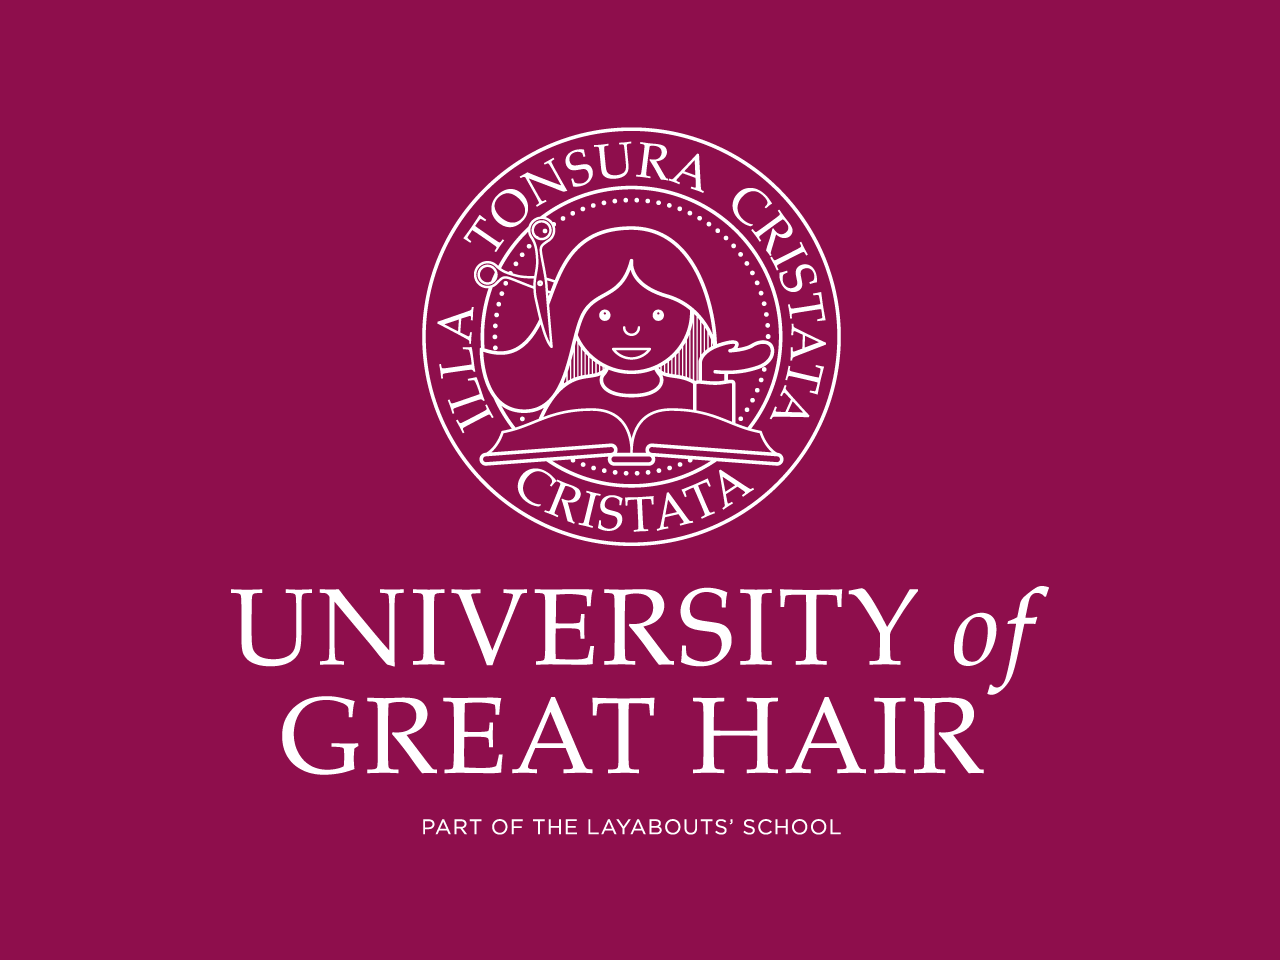 University of Great Hair